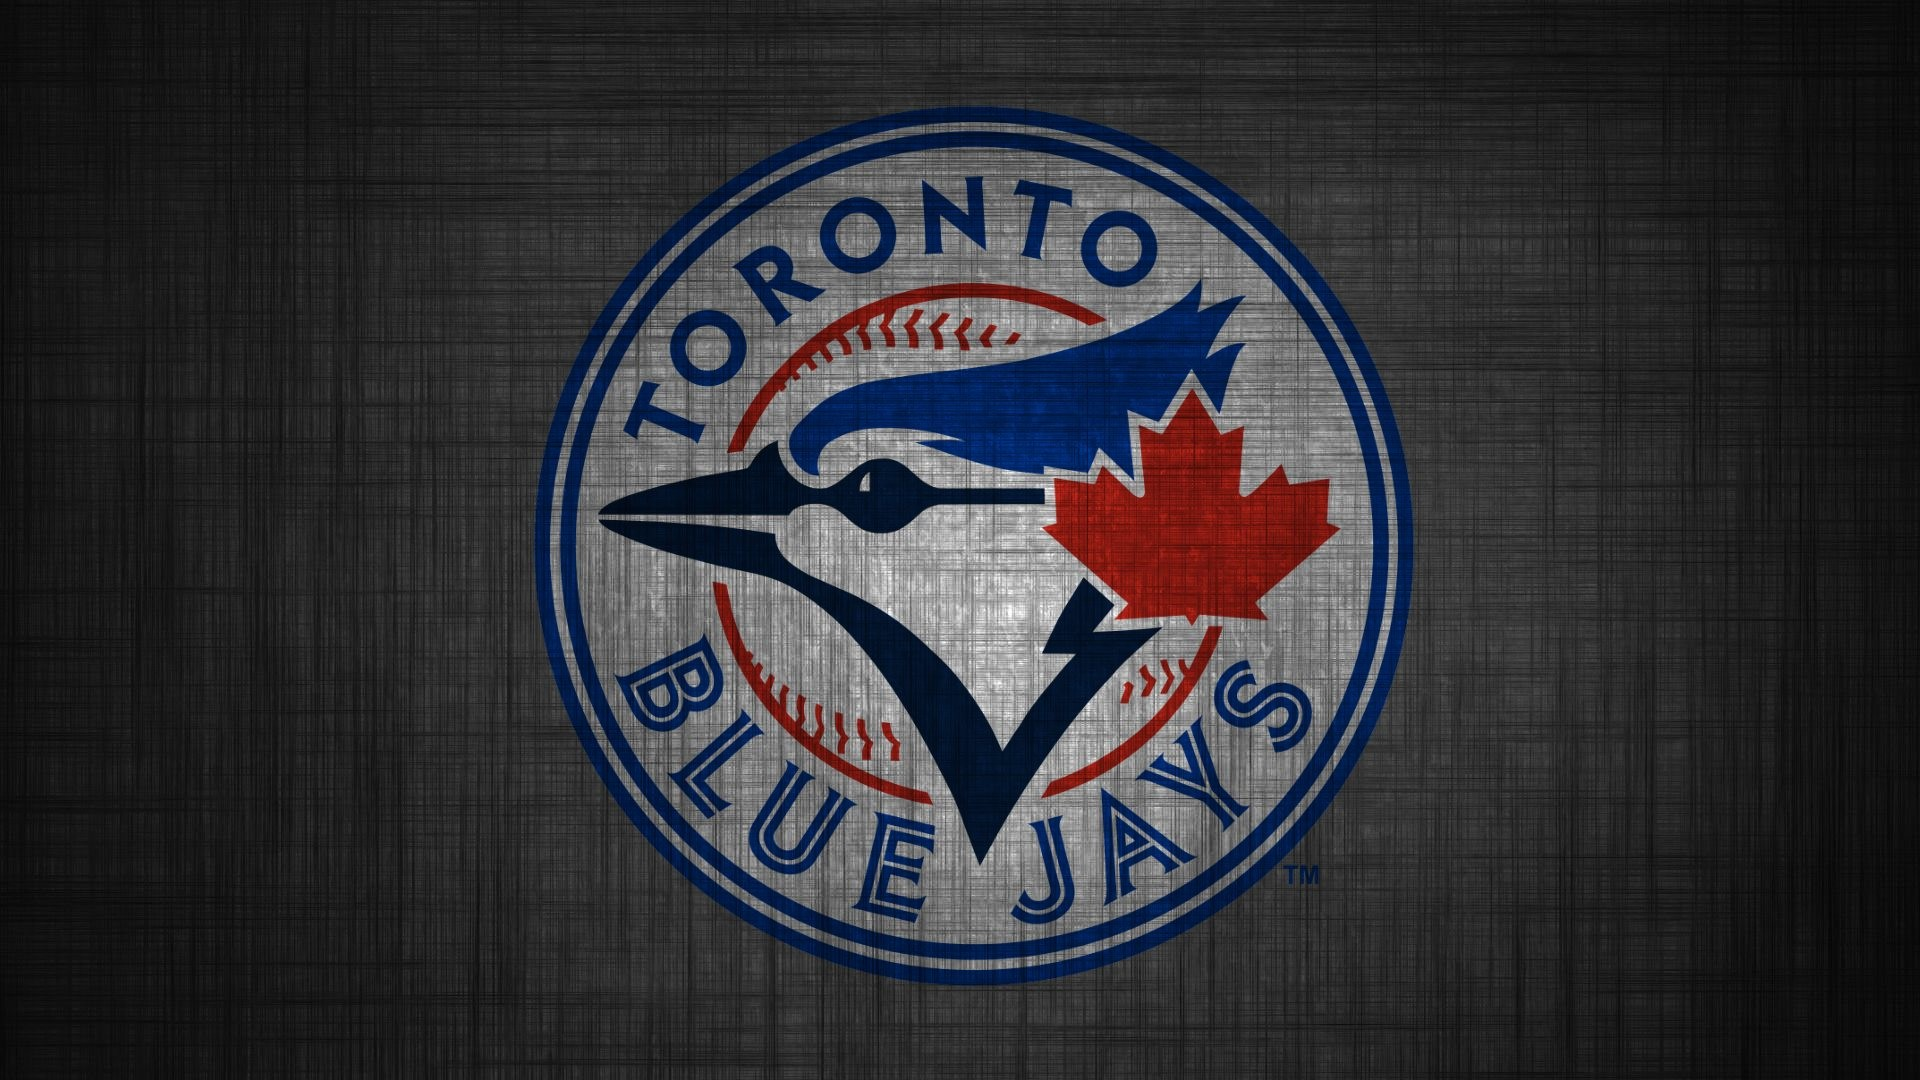 1920x1080 Toronto Blue Jays images Toronto Blue Jays HD wallpaper and background  photos